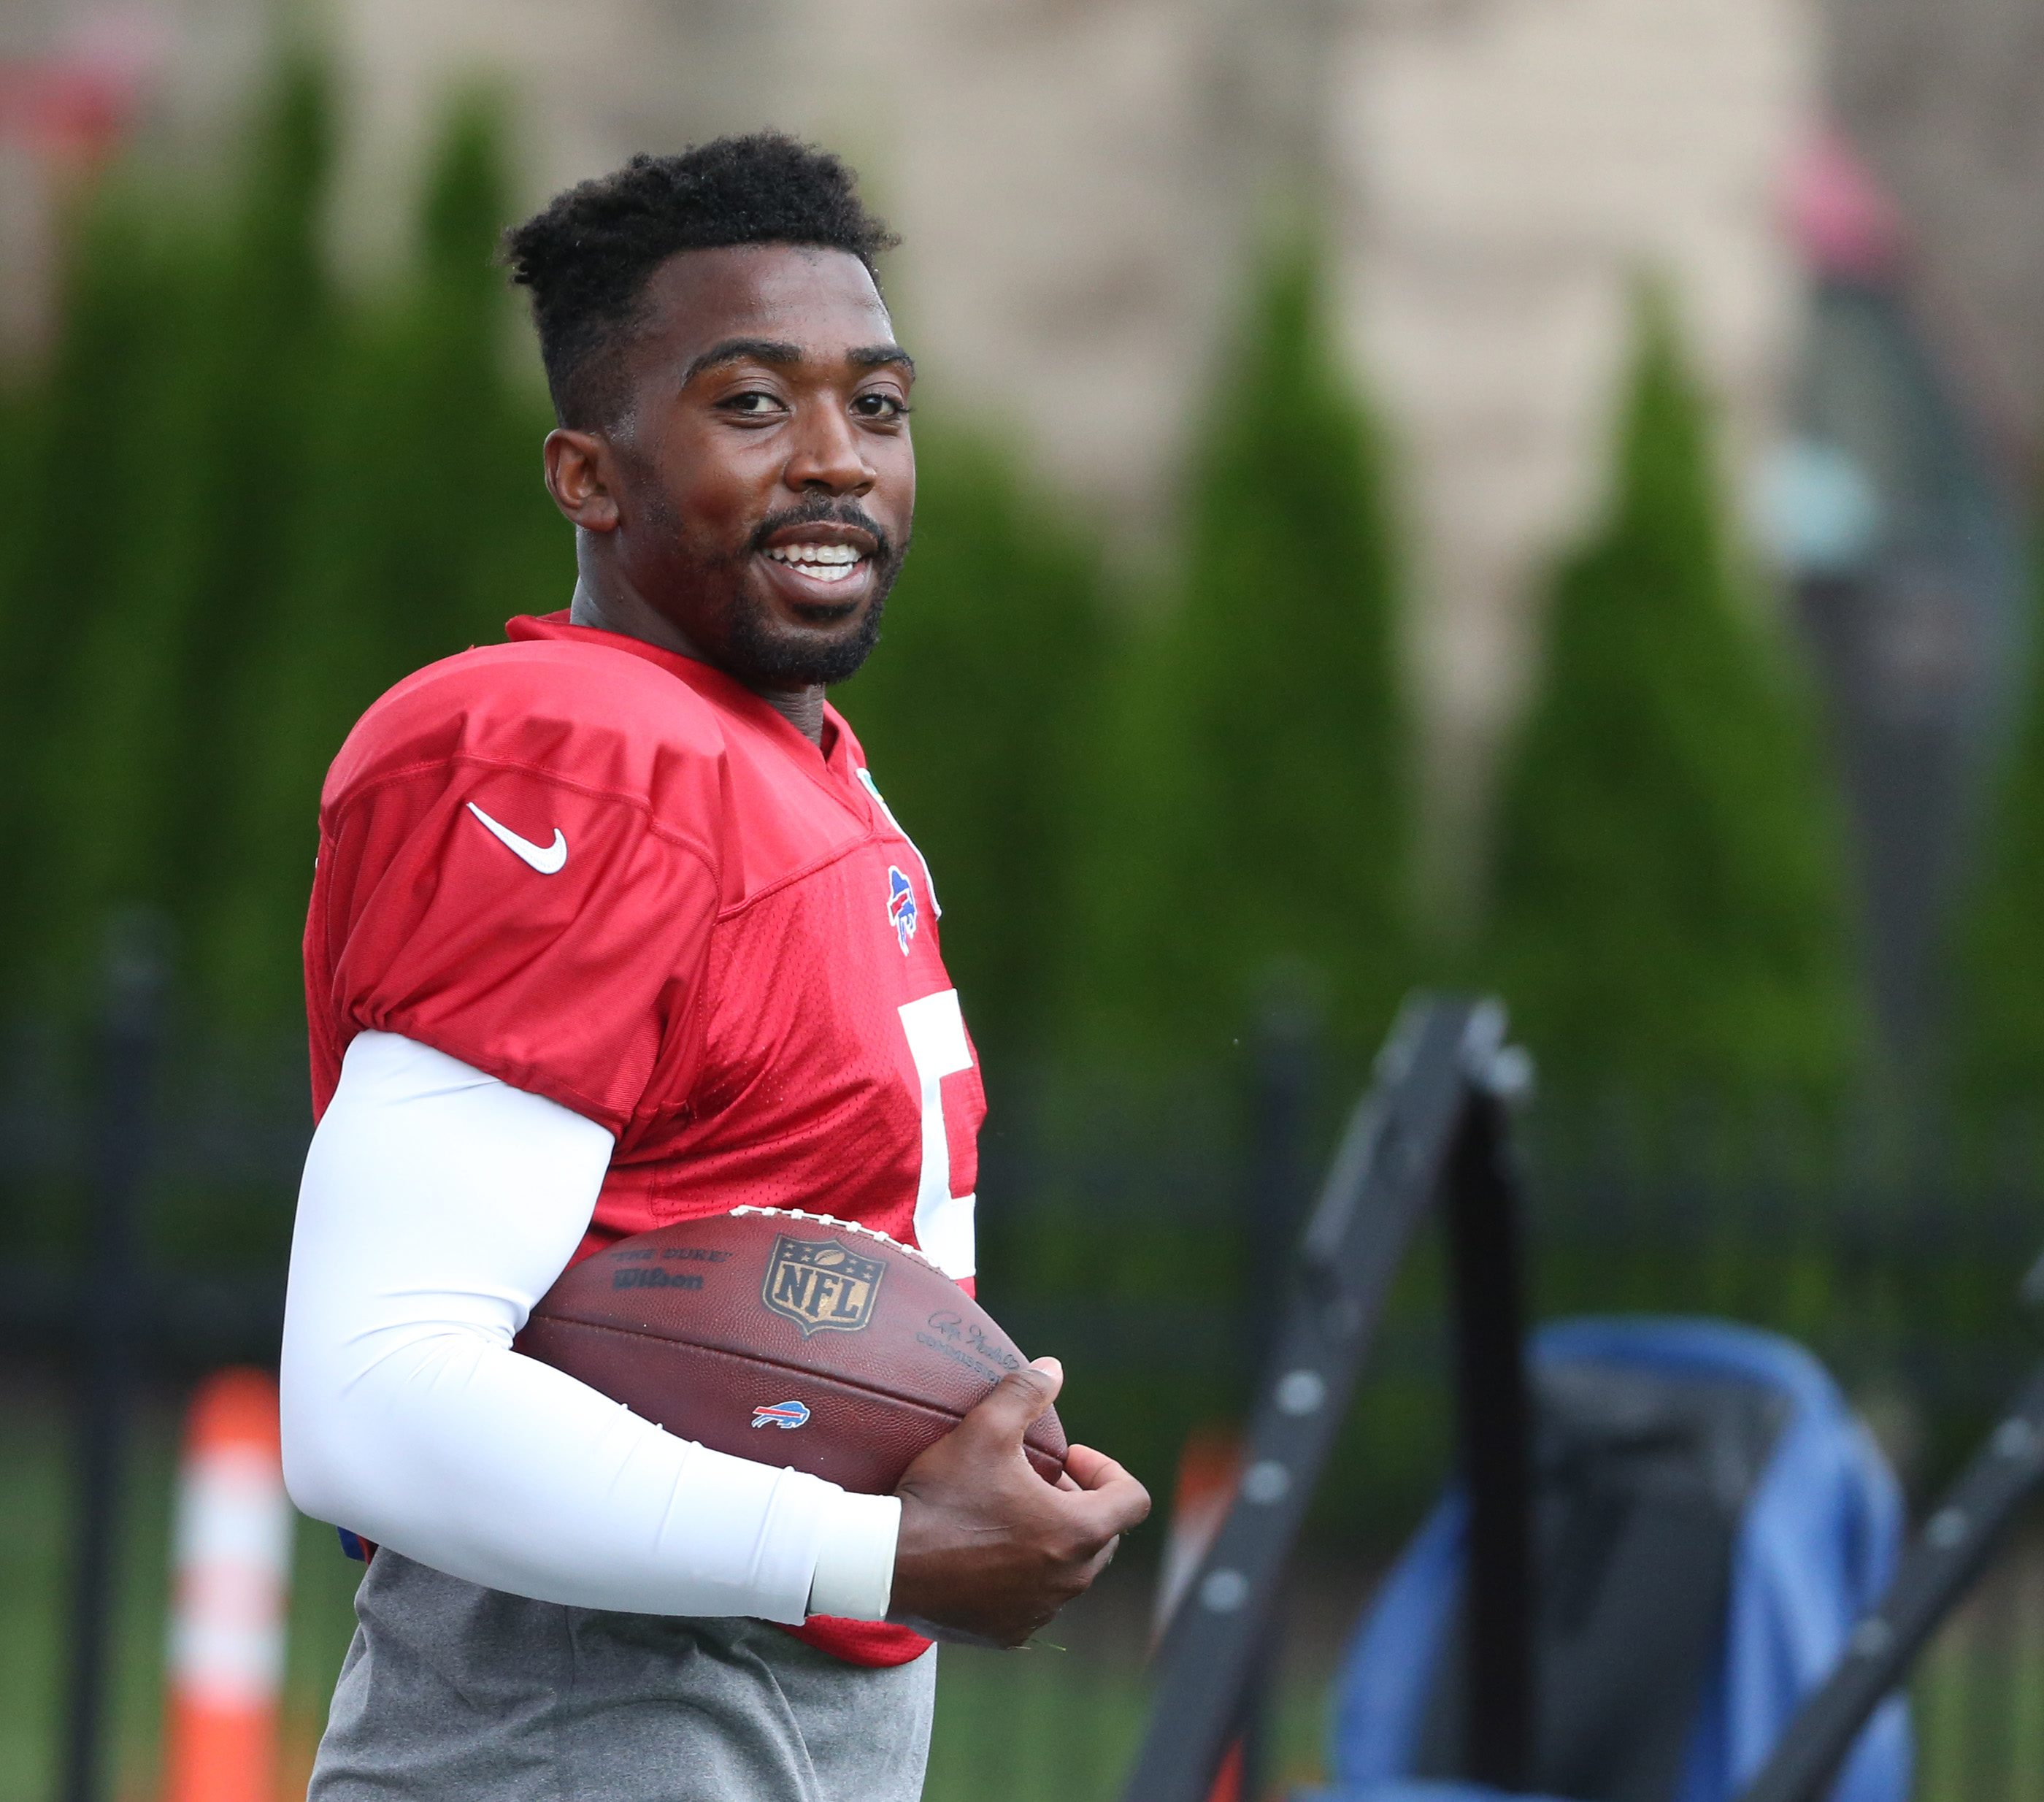 Quarterback Tyrod Taylor said he had 'no clue' about a recent report regarding a possible contract extension with the Bills. (James P. McCoy/ Buffalo News)